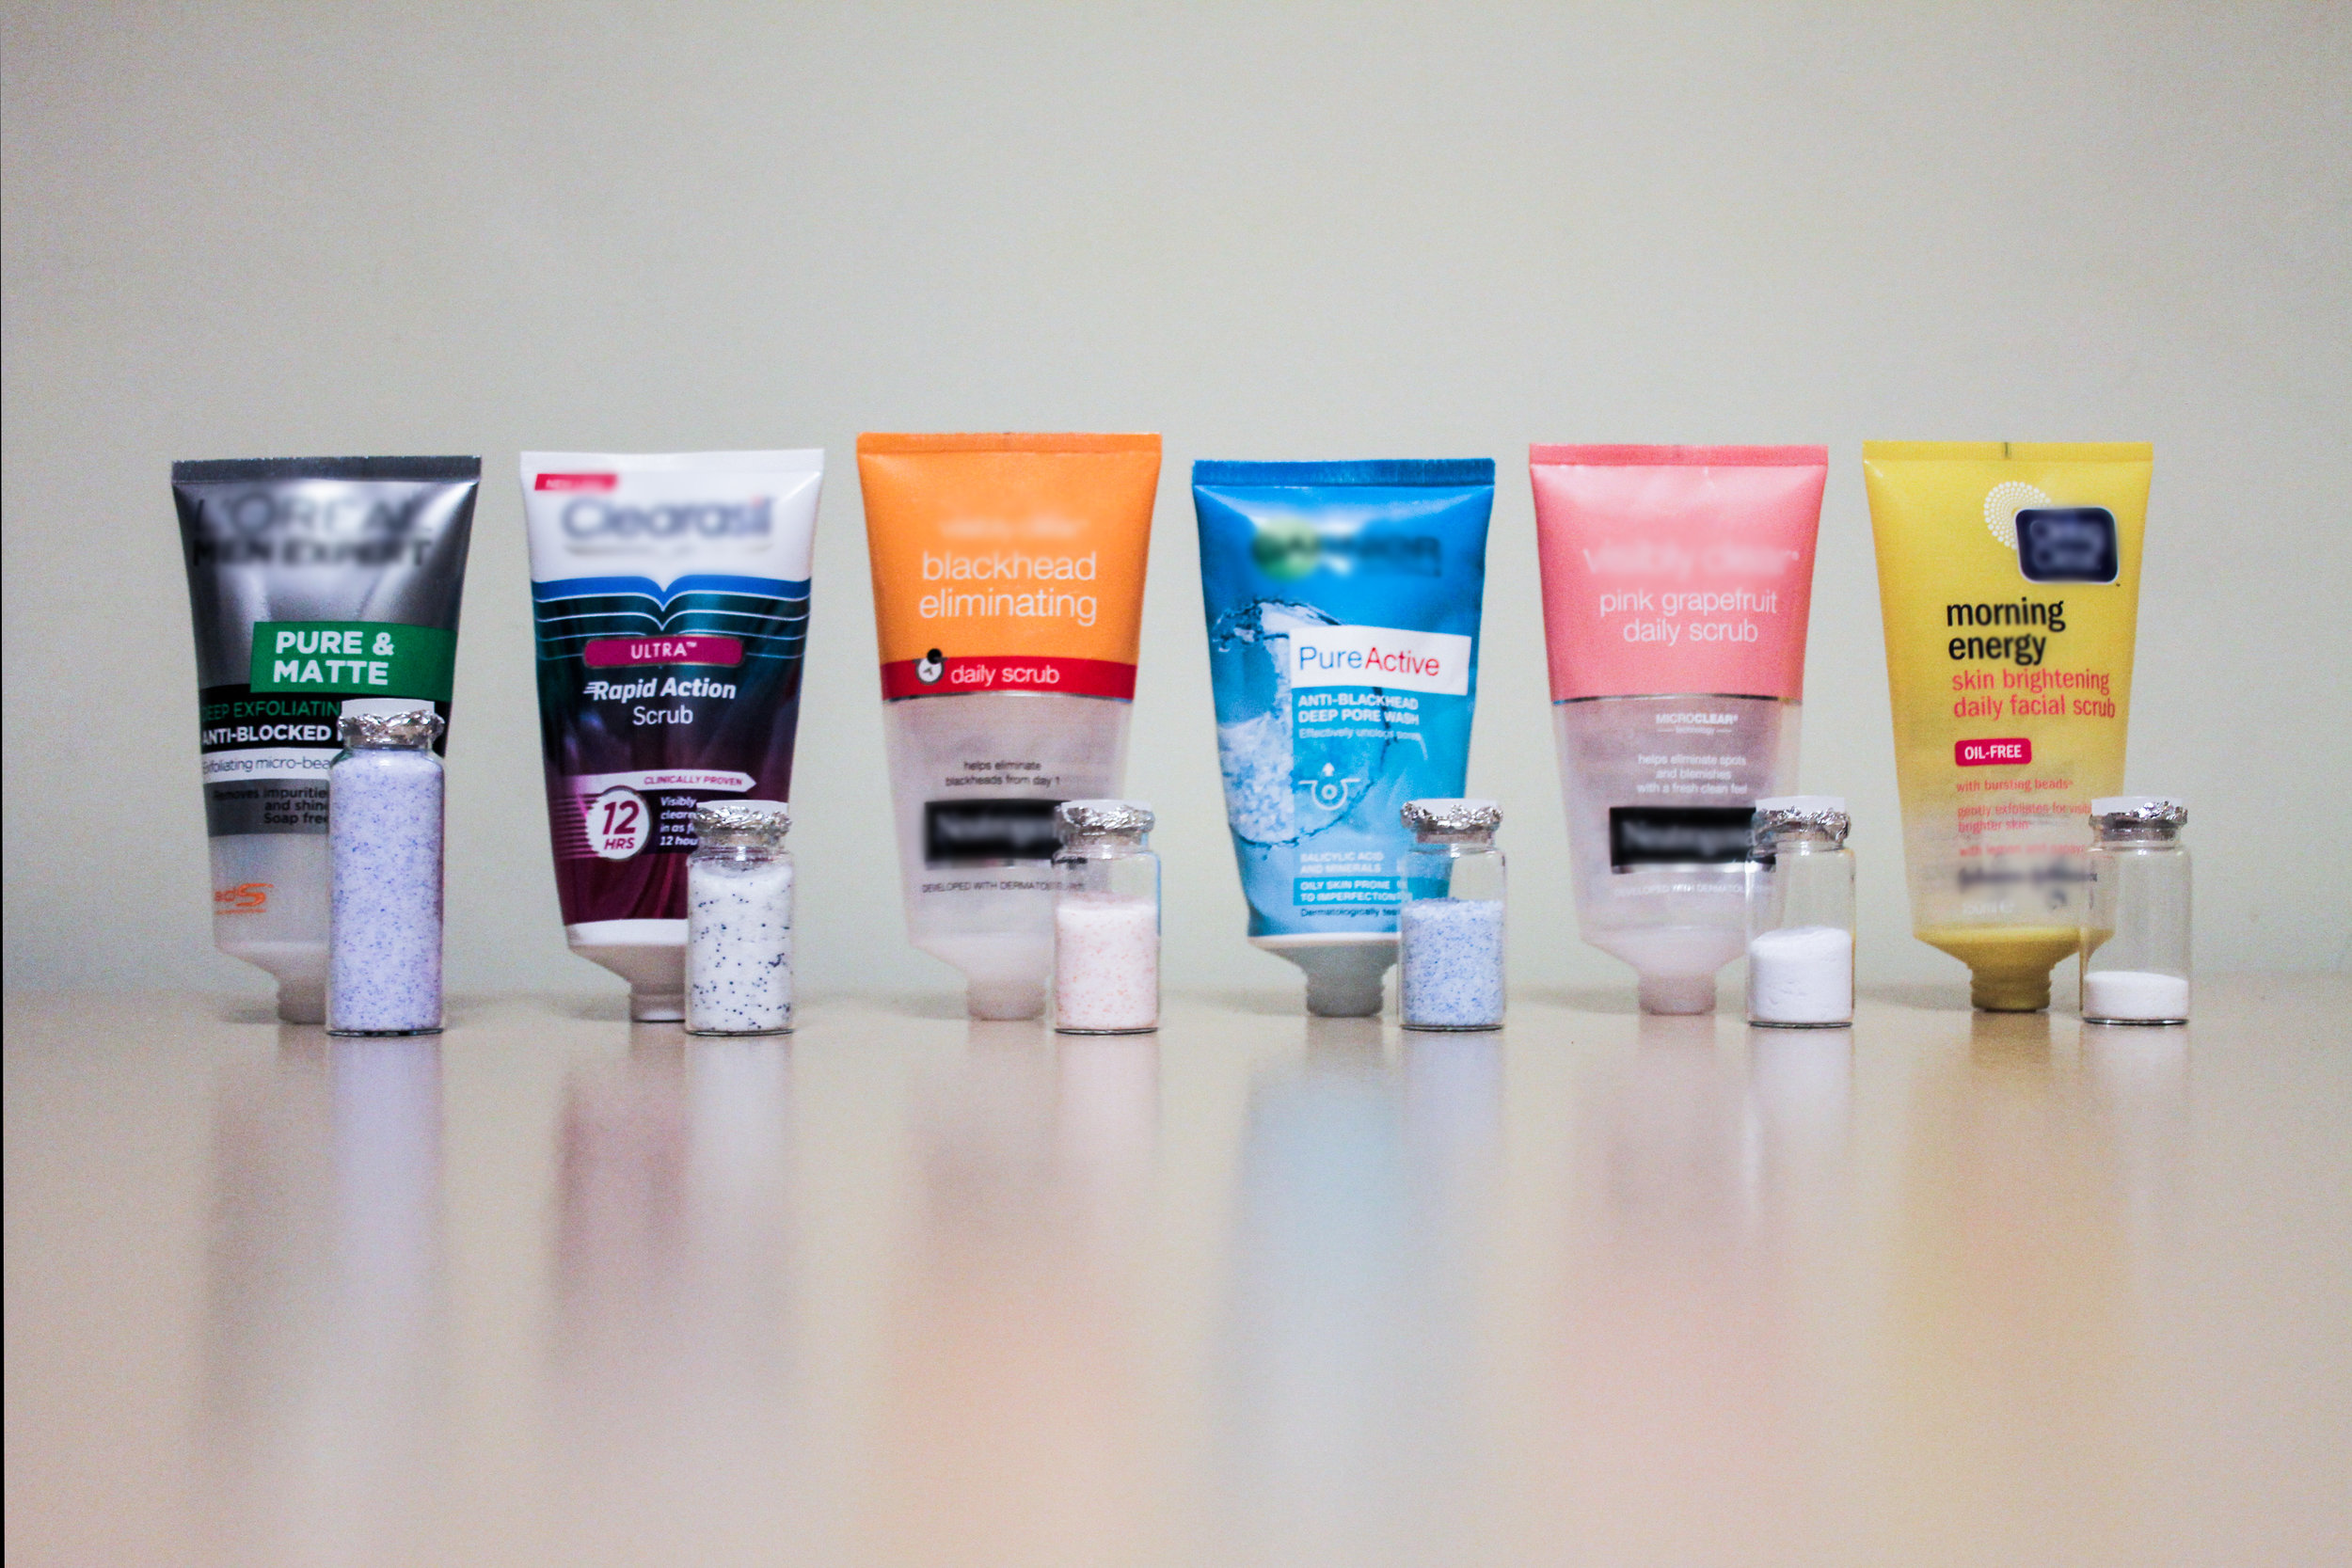 Microbeads extracted from main brand facial scrubs before they were banned in the U.K. Photo: Imogen Napper